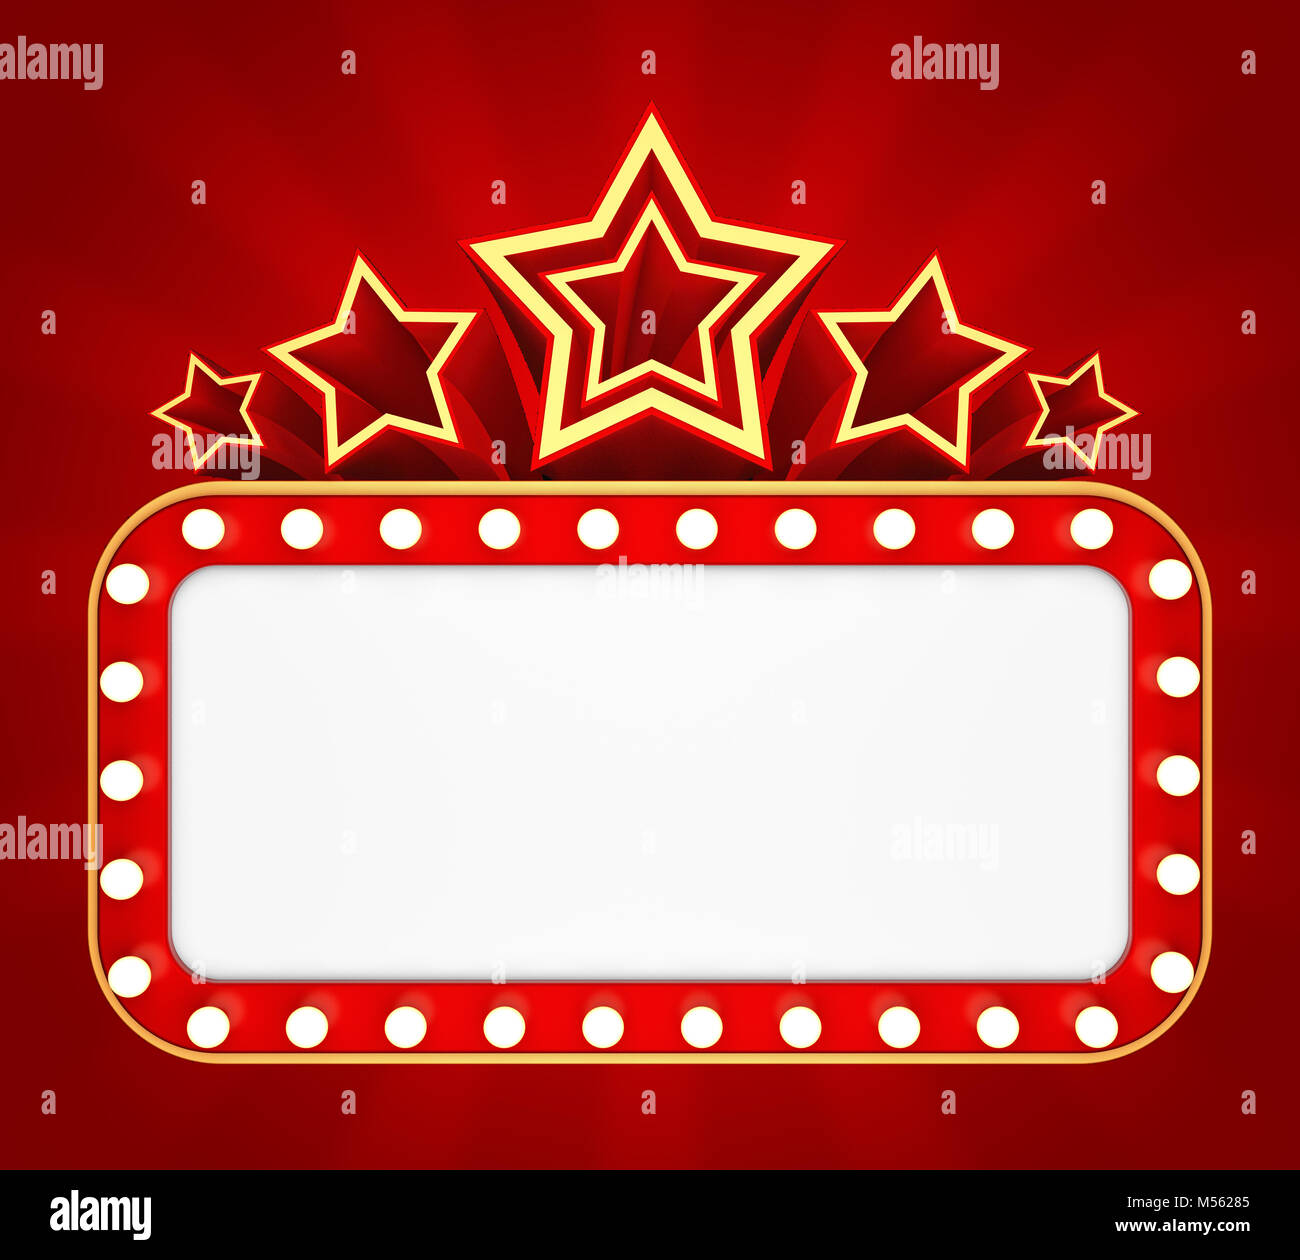 Retro banner with stars on red background. 3D rendering Stock Photo